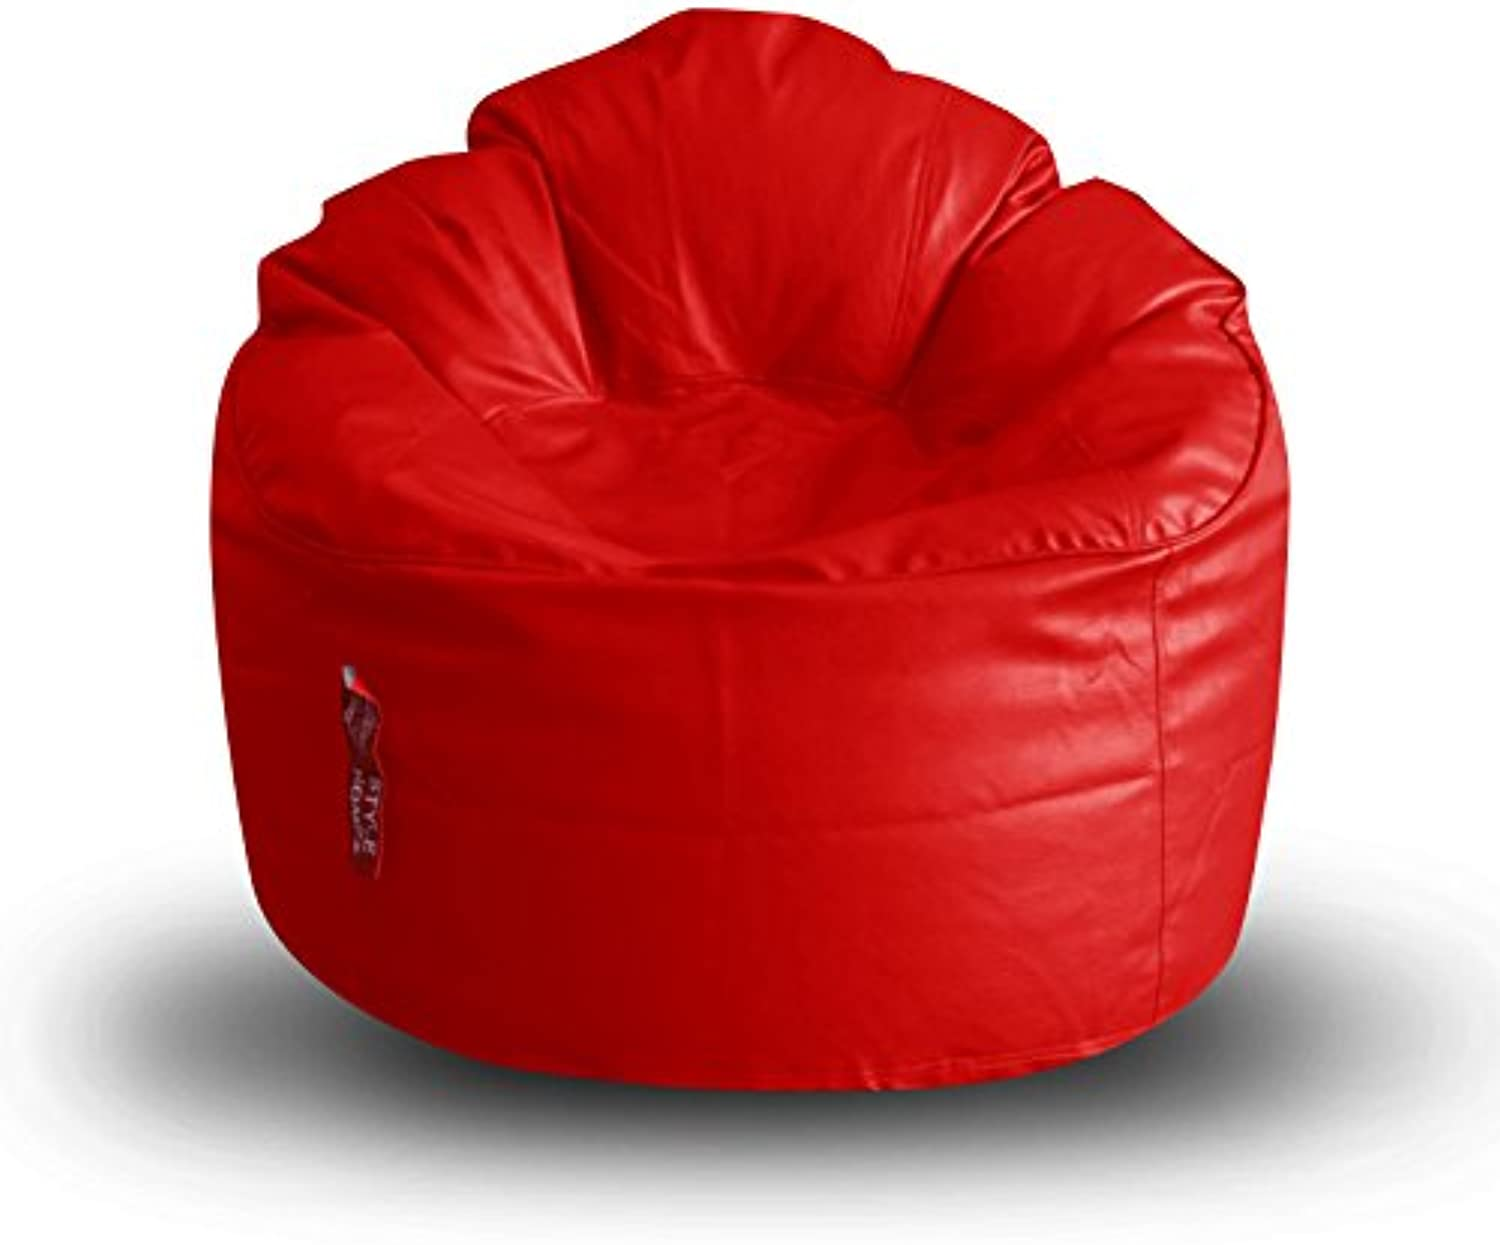 Style Homez Modern Mooda Rocker XXXL Size Red color Cover Only